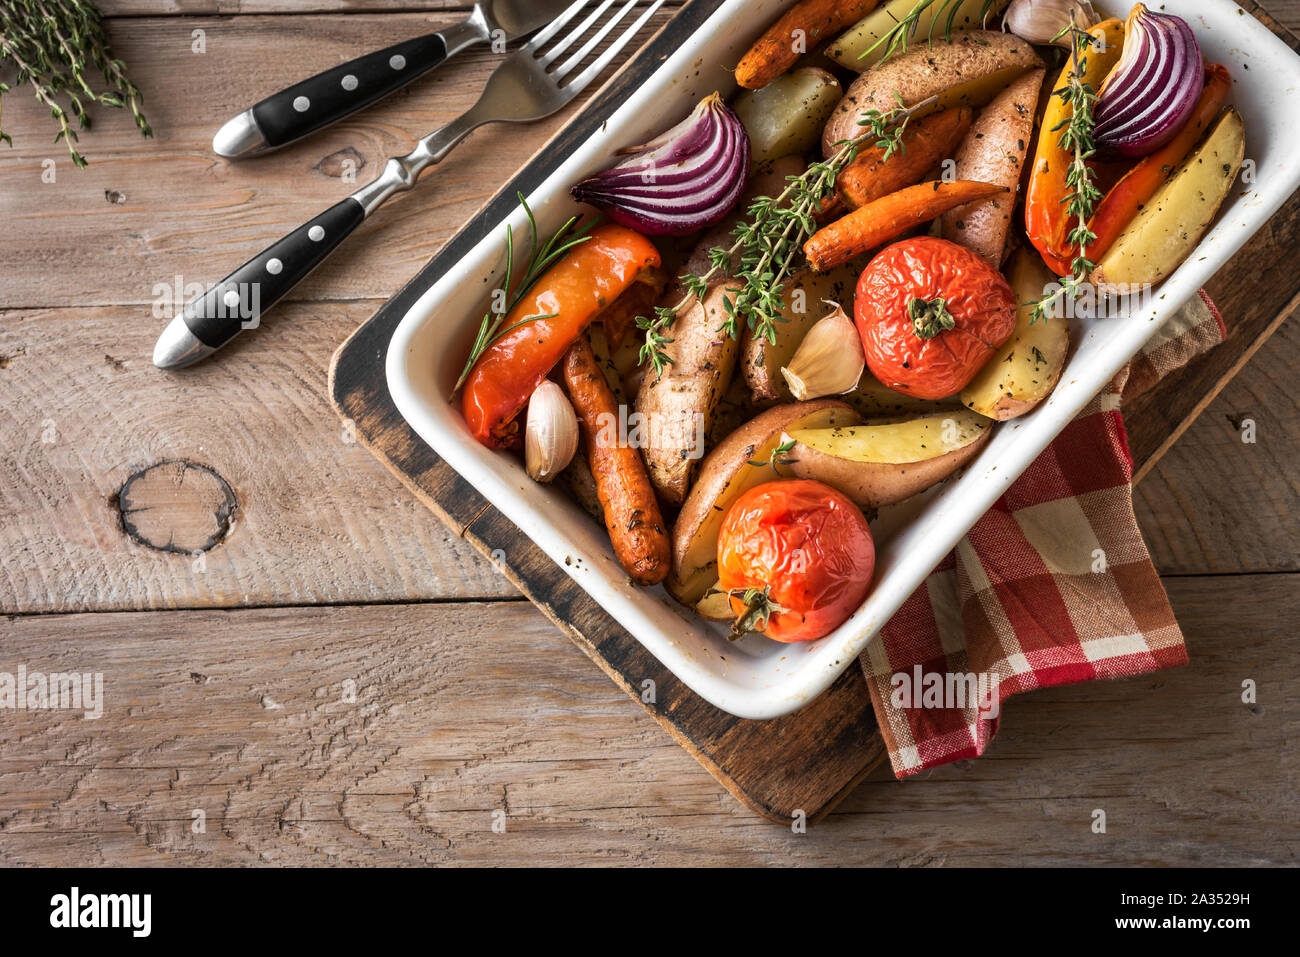 Oven roasted vegetables with spices and herbs in baking dish on wooden table. Vegetarian vegan  healthy organic autumn meal - baked vegetables. Stock Photo